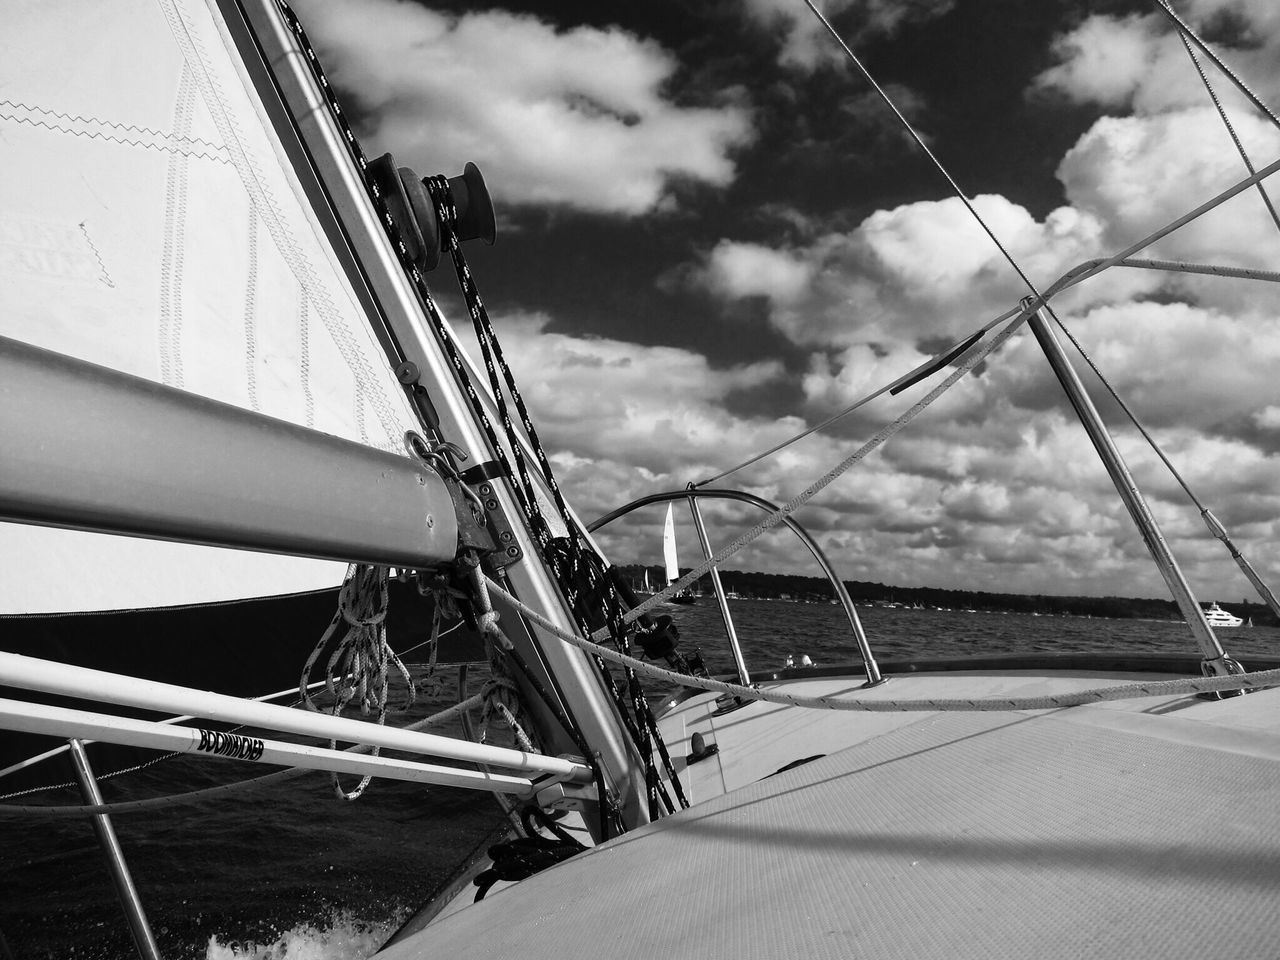 nautical vessel, sky, cloud - sky, transportation, sailing, mast, outdoors, sailboat, mode of transport, no people, sea, day, ship, rigging, yacht, water, nature, sailing ship, boat deck